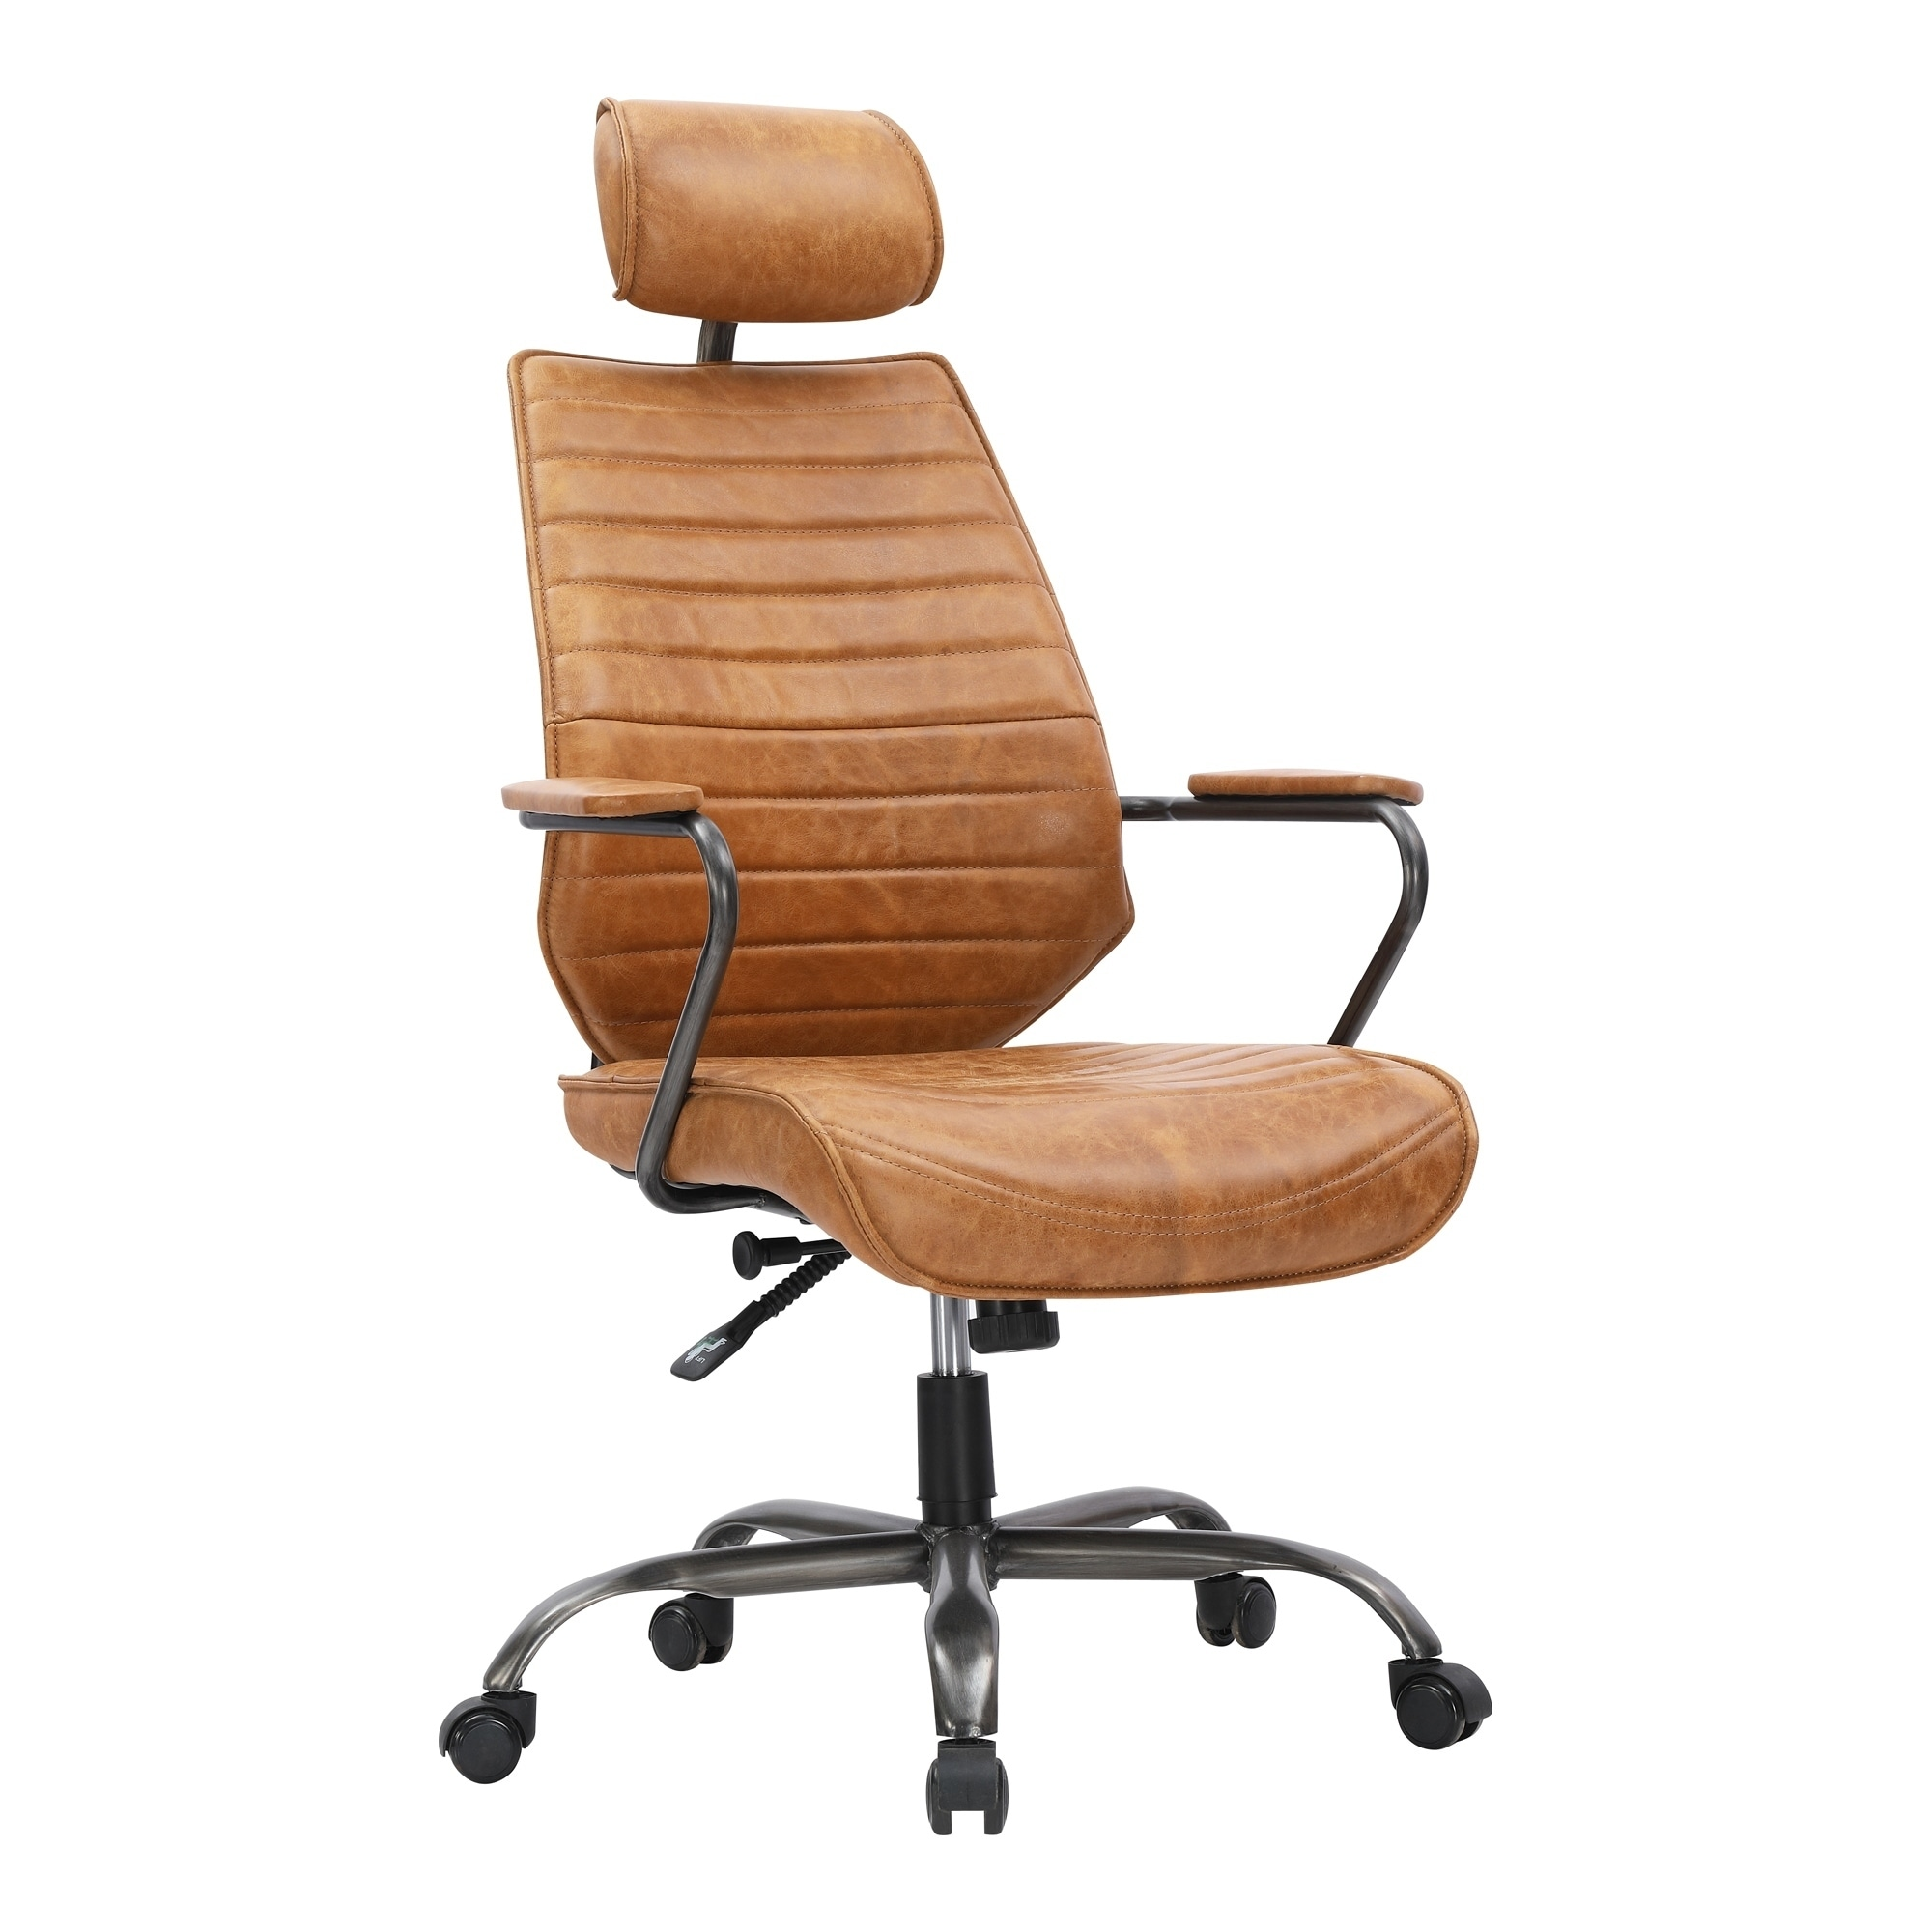 Rustic Leather Office Chair